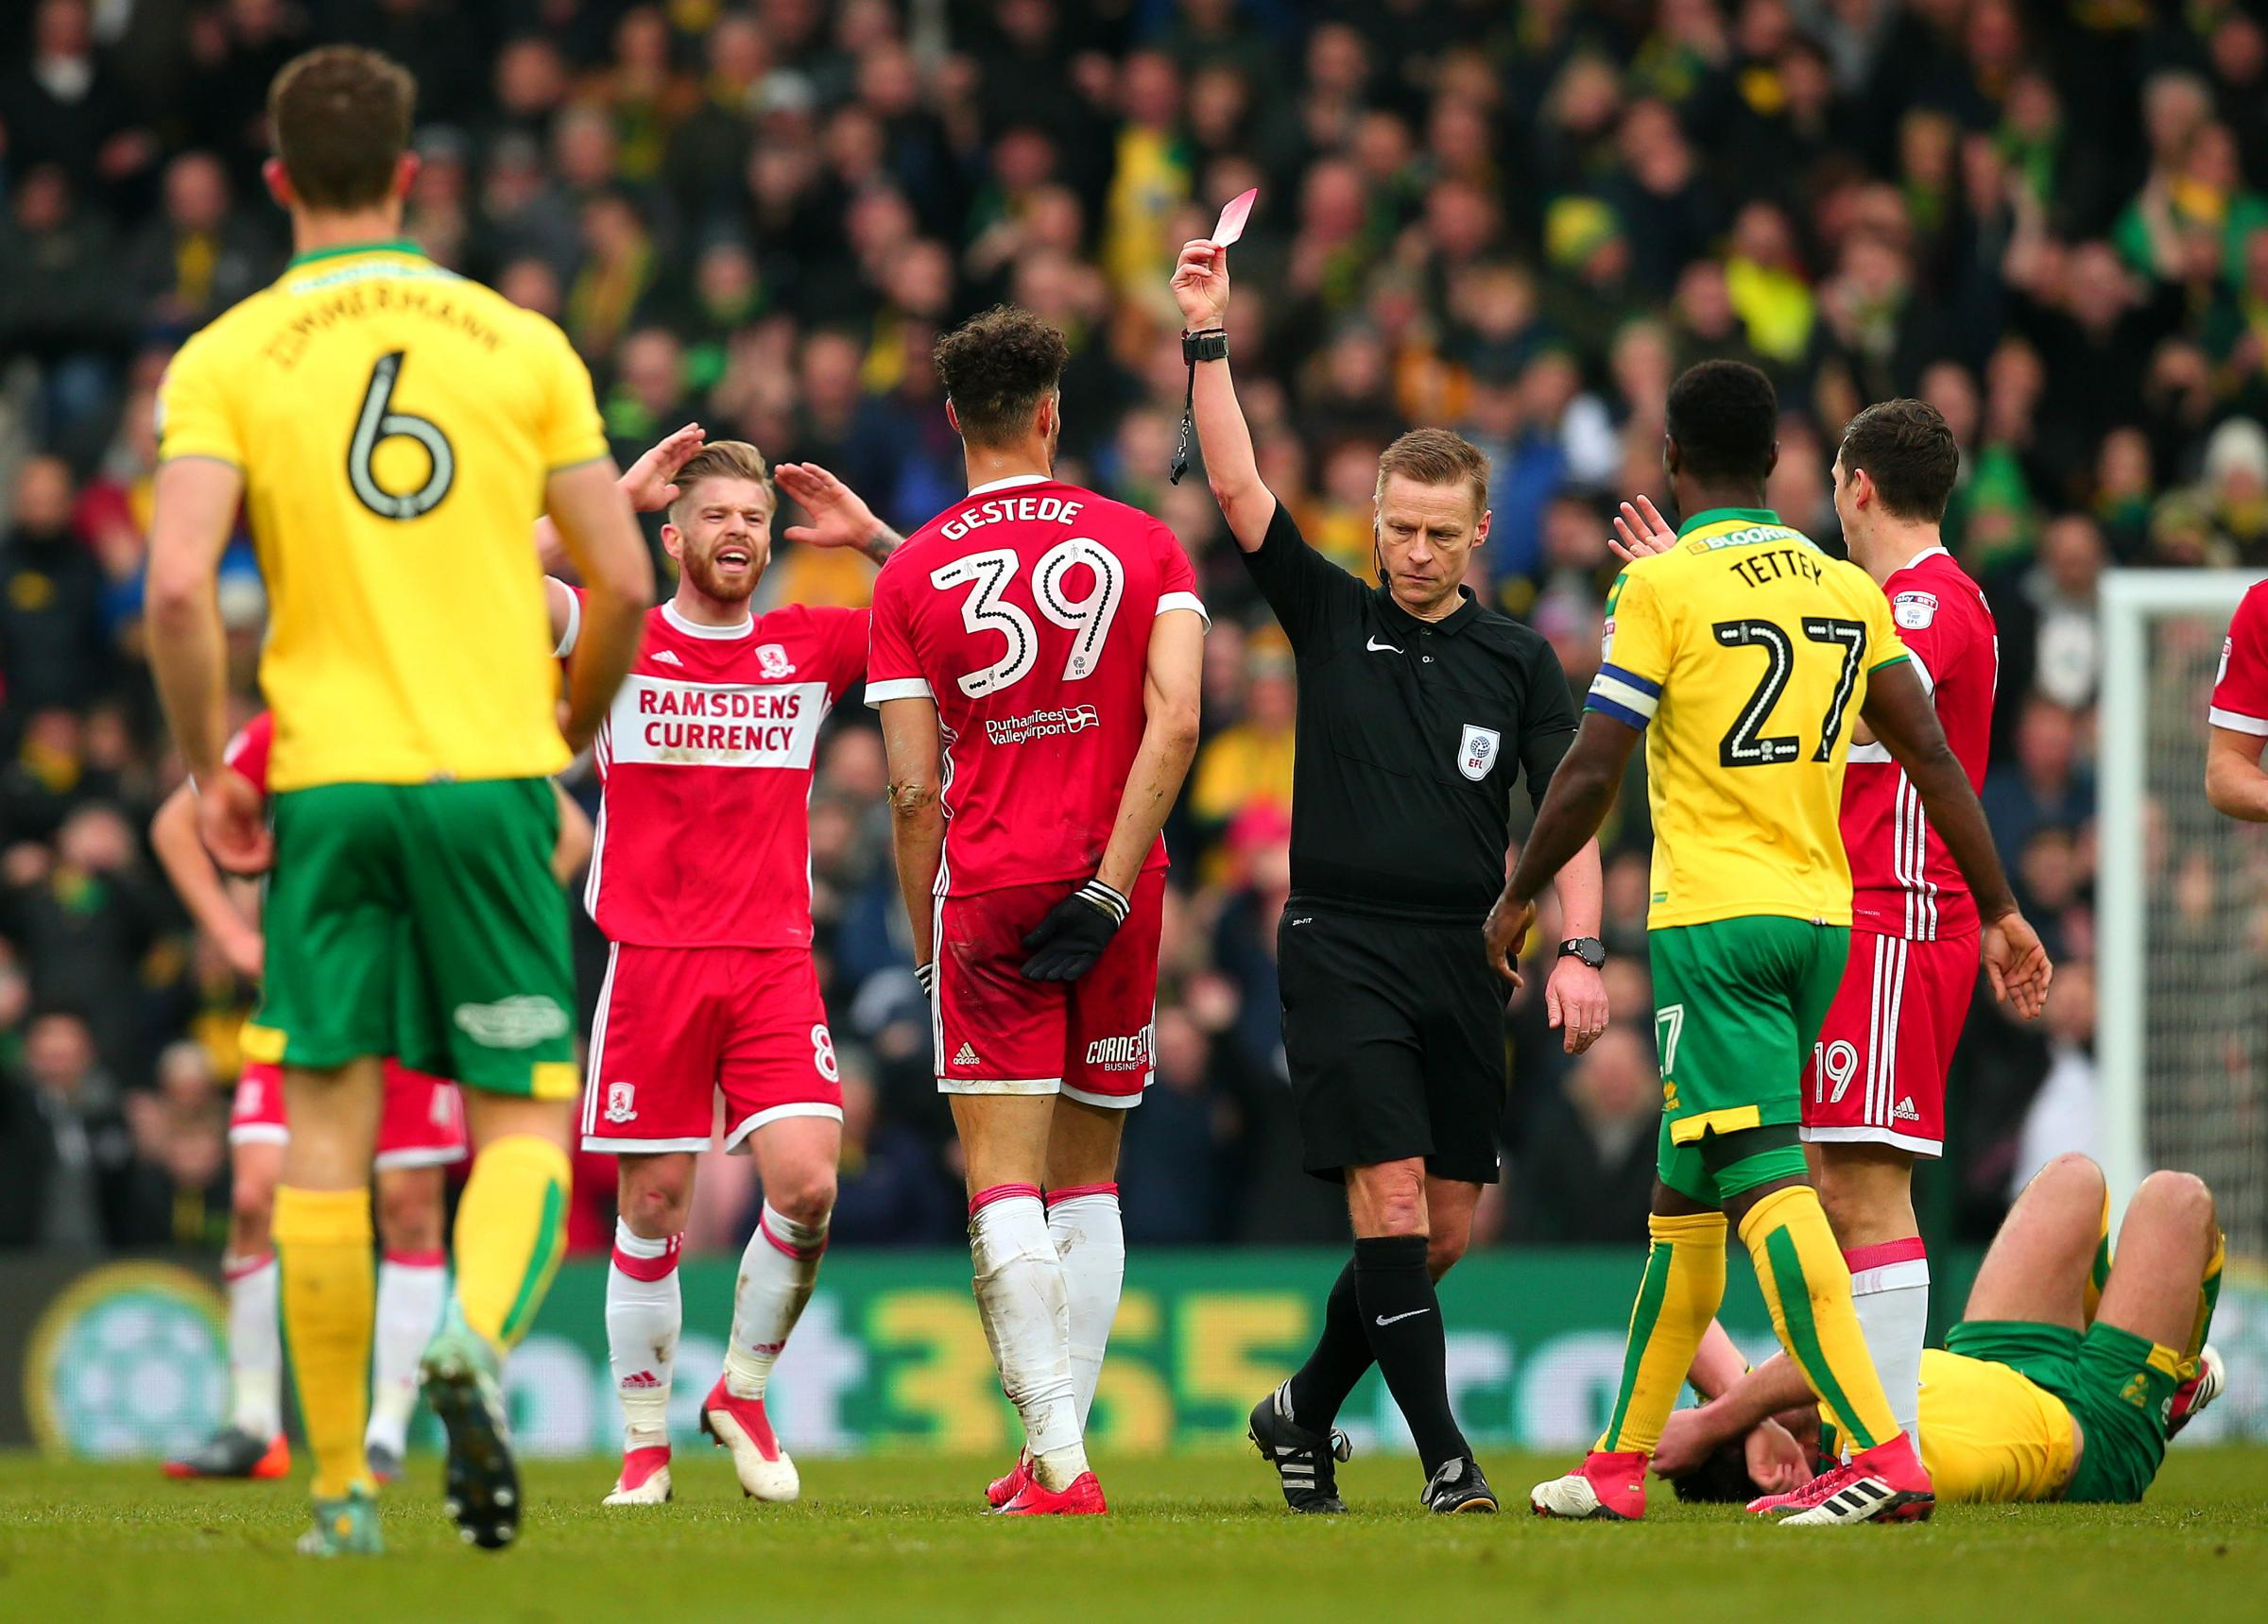 SENT OFF: Mike Jones issues Rudy Gestede with a straight red card during Middlesbrough's 1-0 defeat to Norwich (Picture: Joe Meredith)